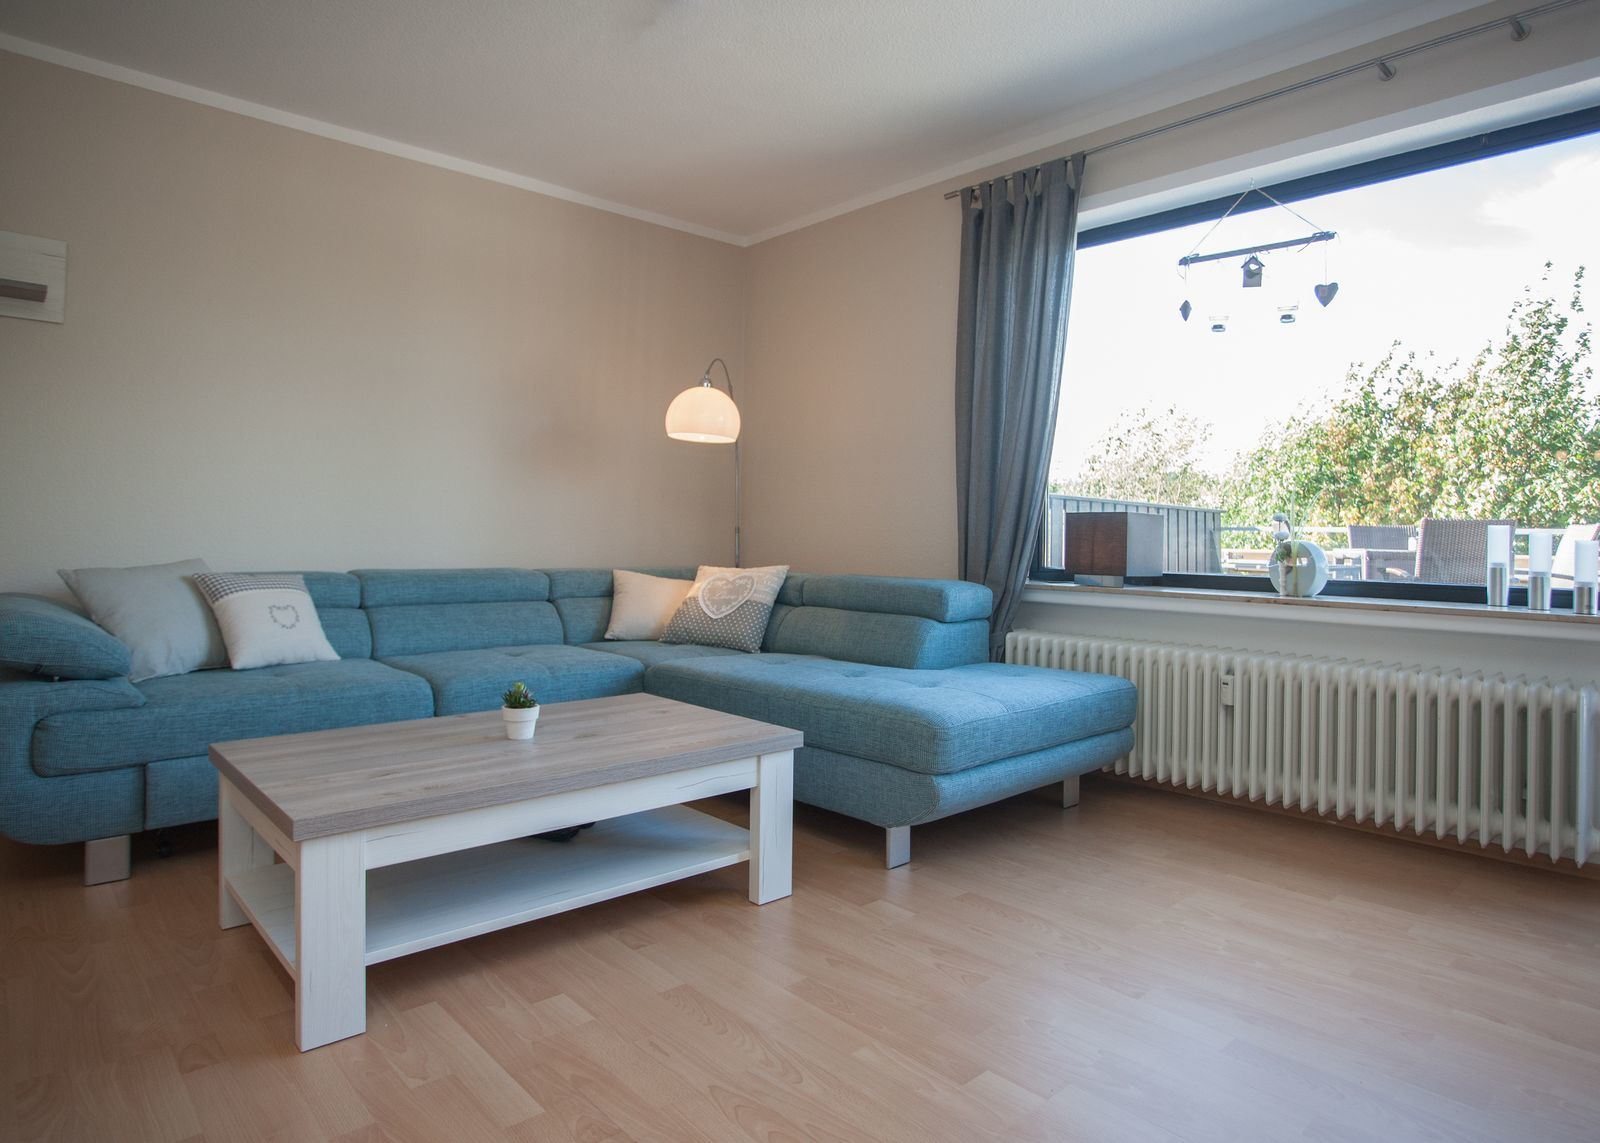 Apartment - Gartenstrasse 17 | Winterberg